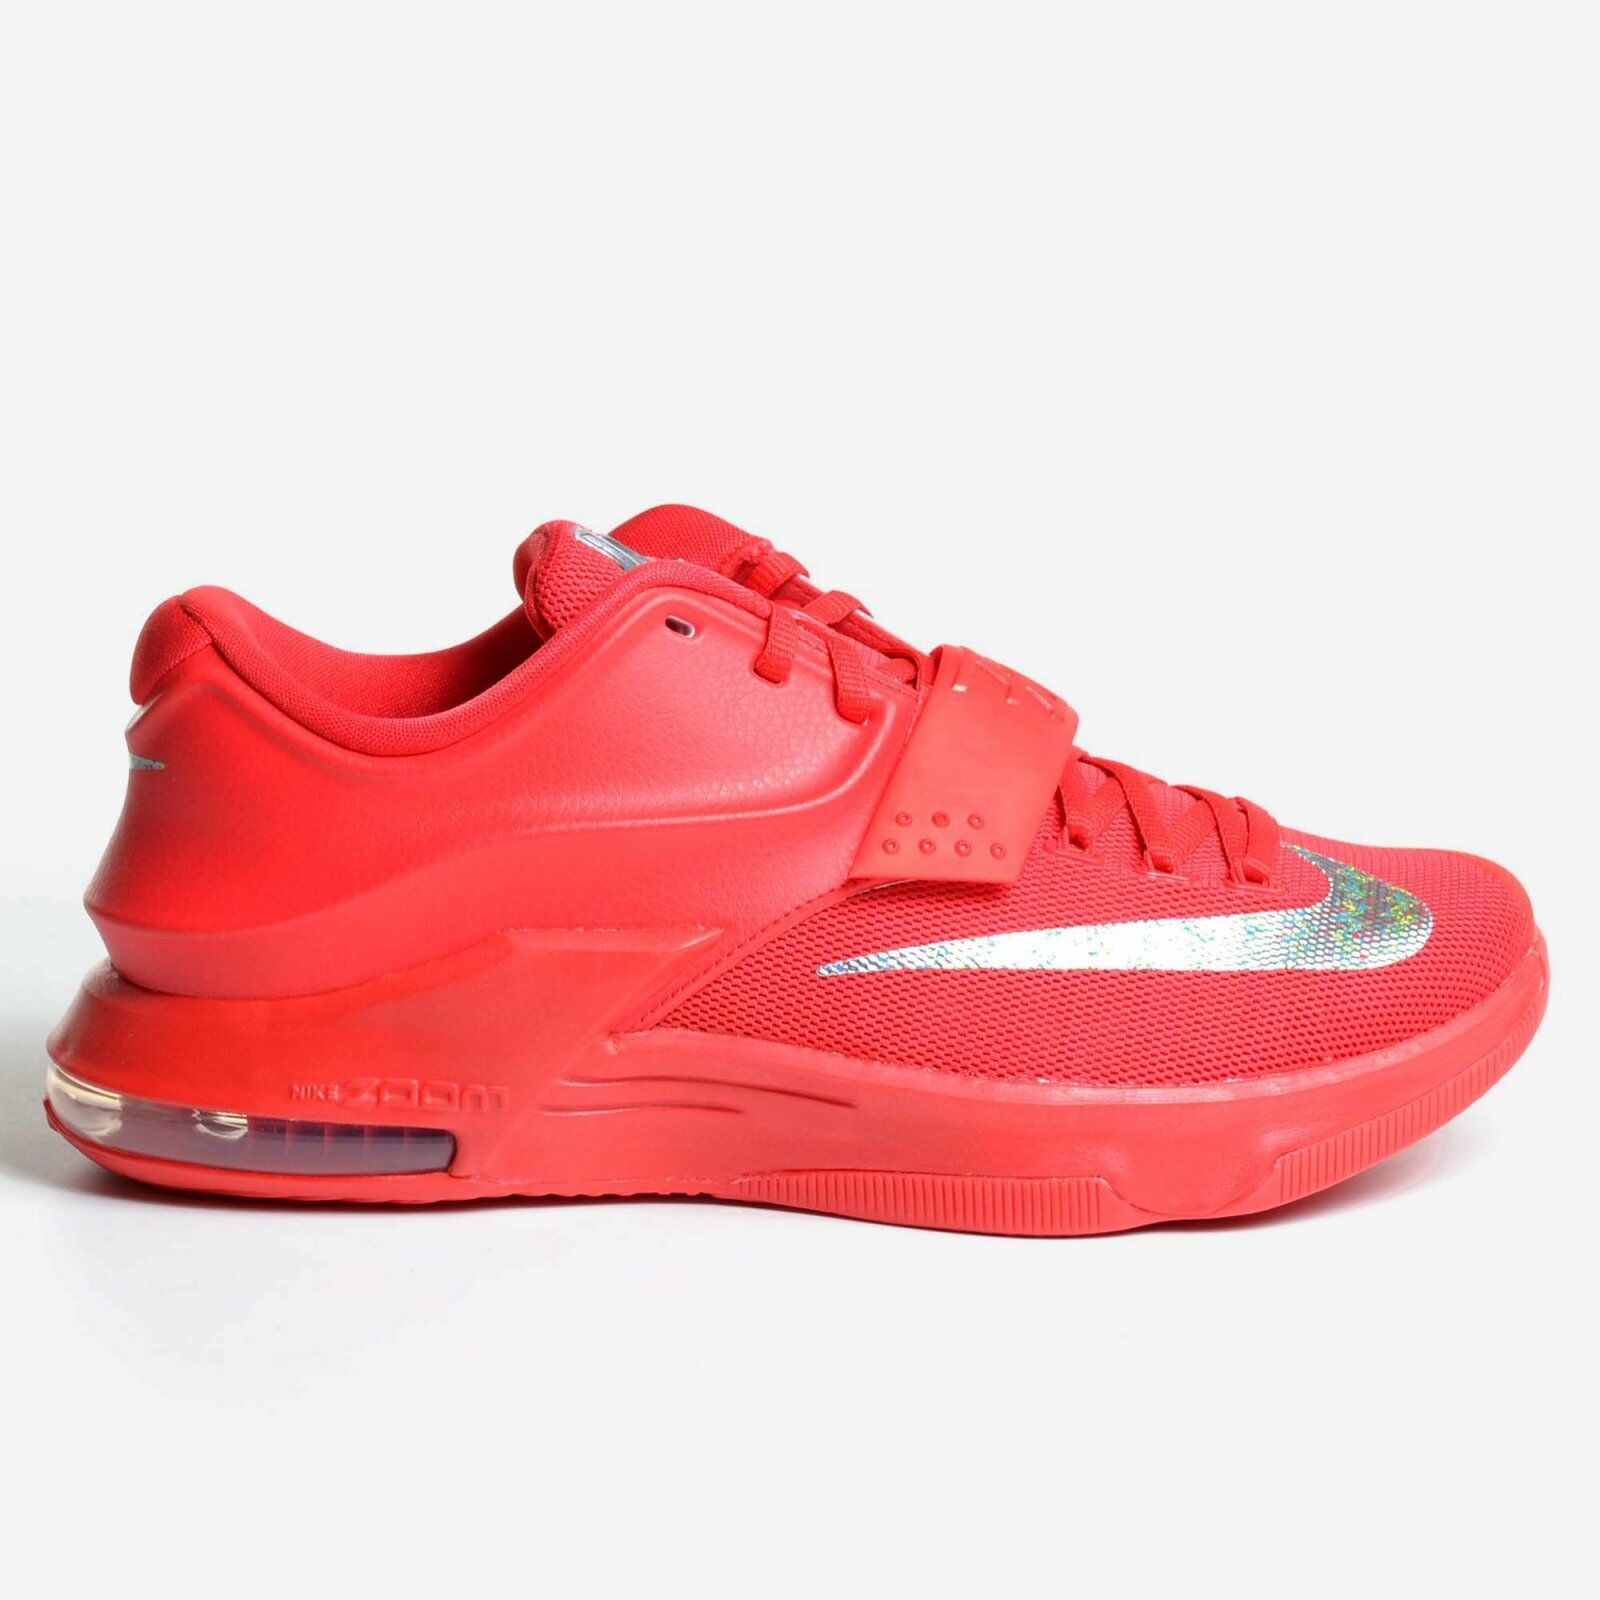 Nike Kd Global 7 EP Global Kd Game 2018 Action Rojo Plata XDR VII Basketball DS 653997-660 d56194